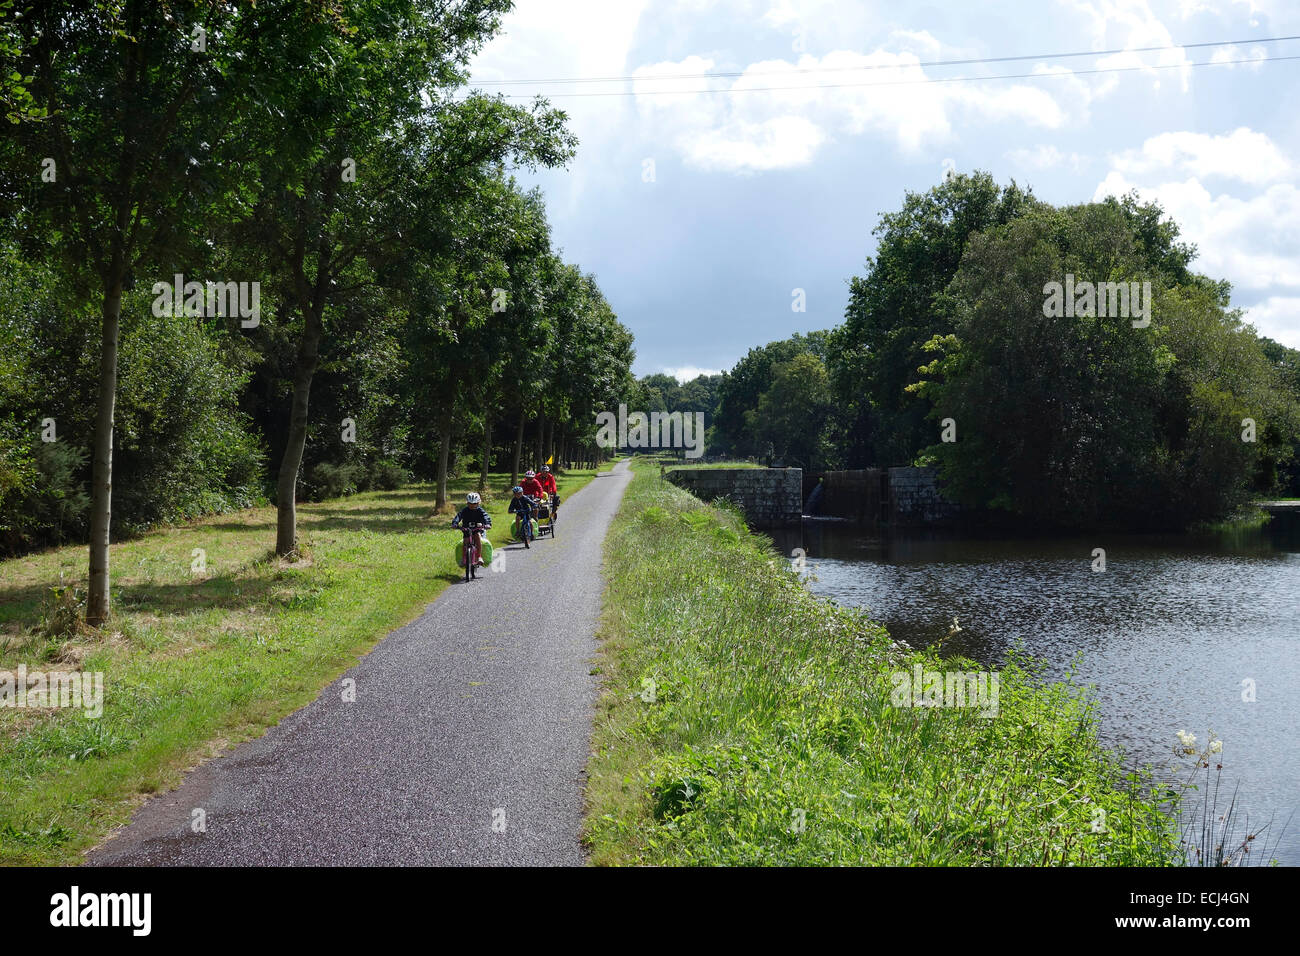 Cyclists on the Nantes- Brest Canal, Brittany France near Pontivy - Stock Image